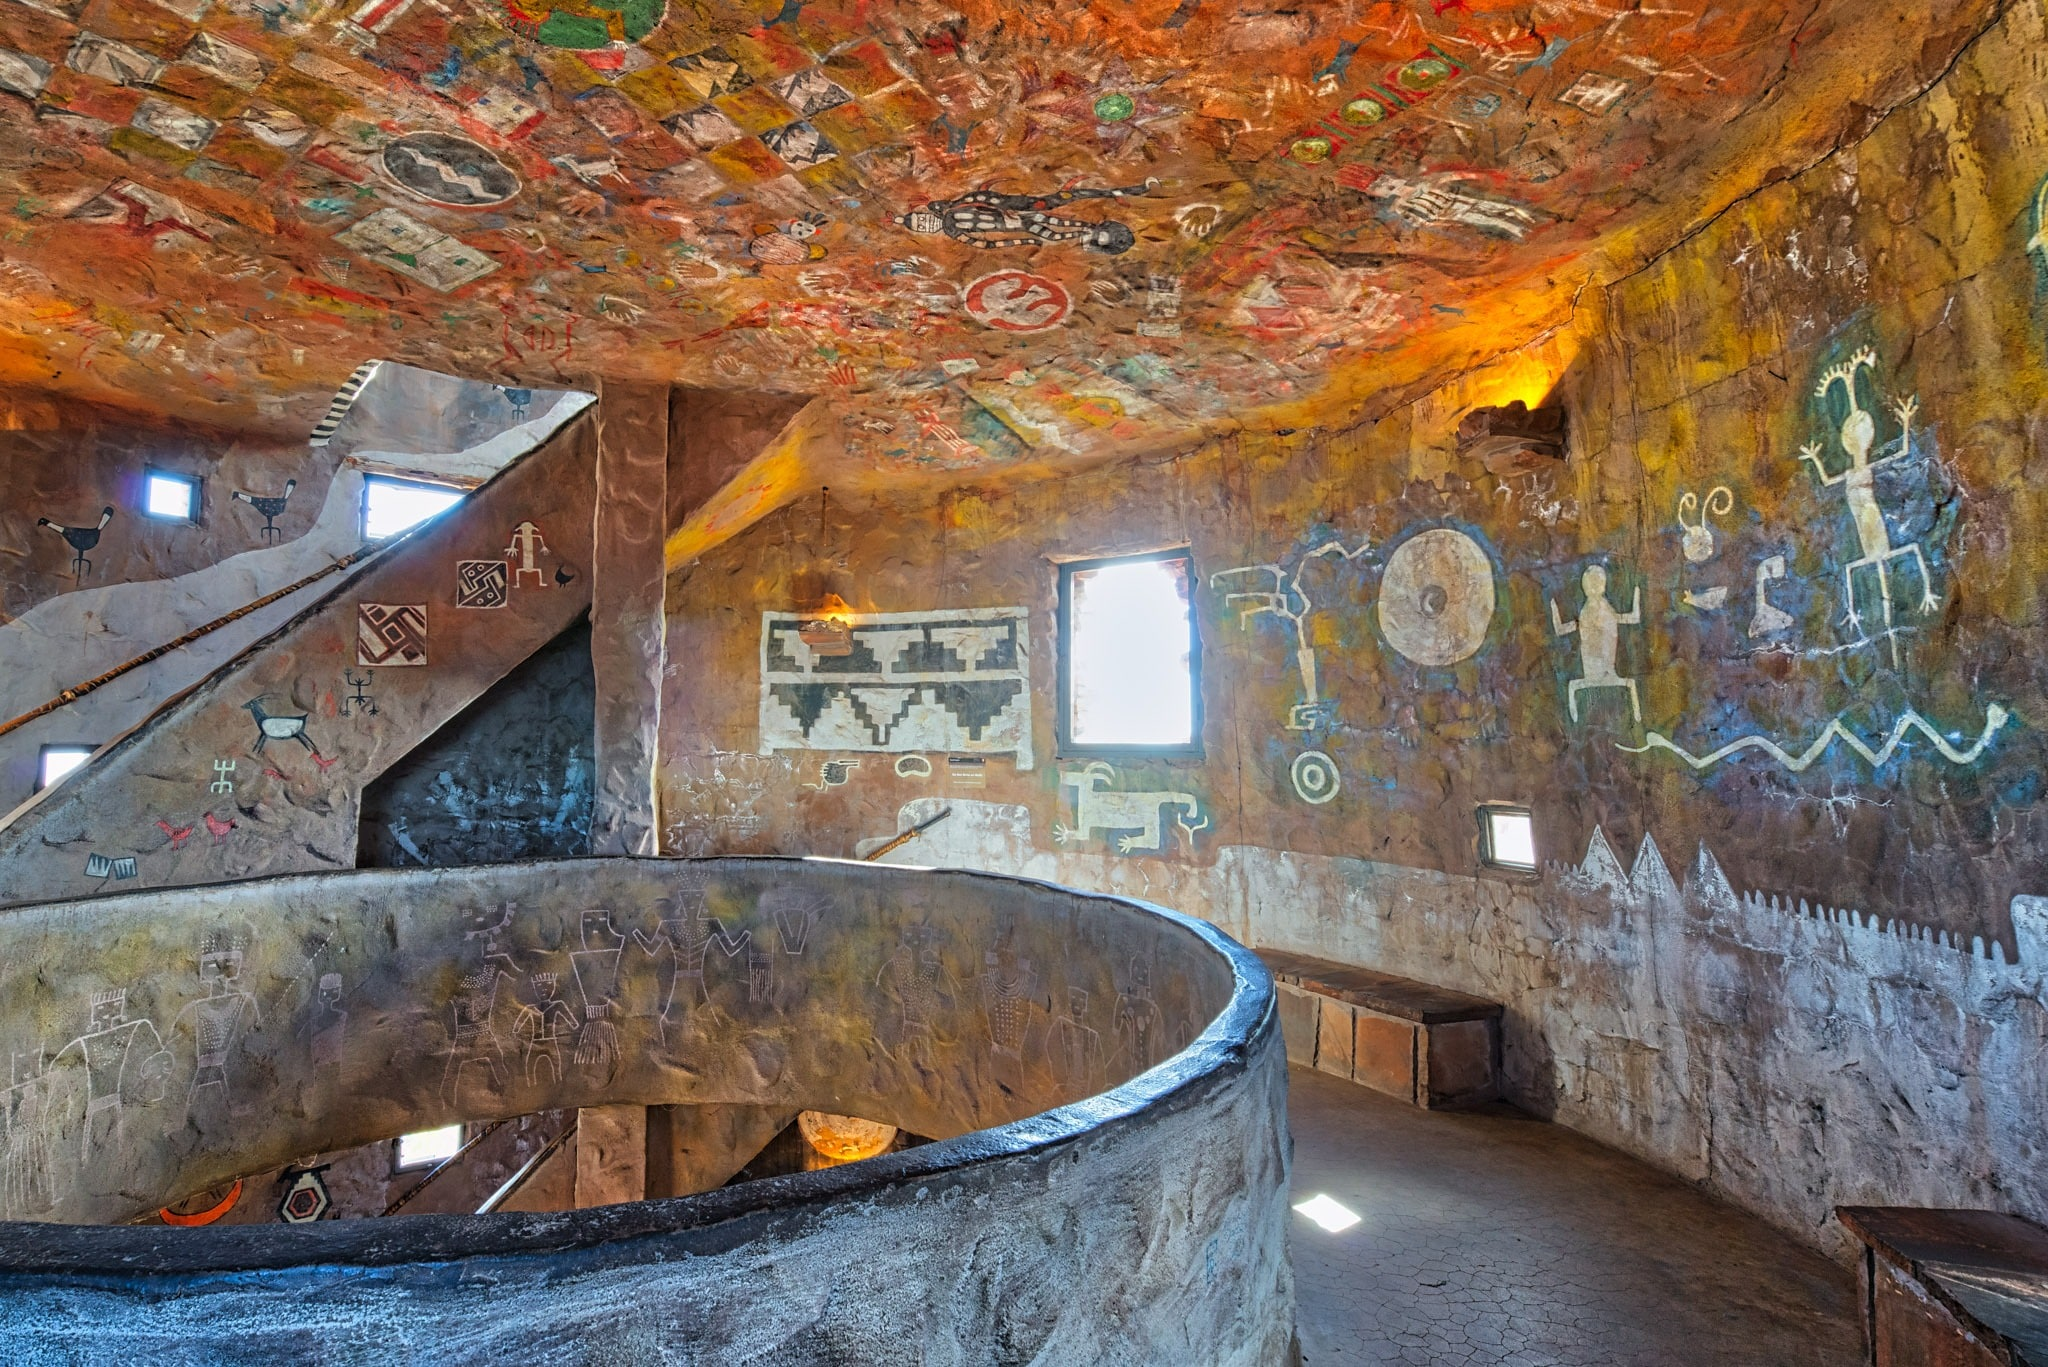 View of the interior of the Watchtower highlighting the reproductions of pictographs and petroglyphs found in the Grand Canyon region of Arizona.